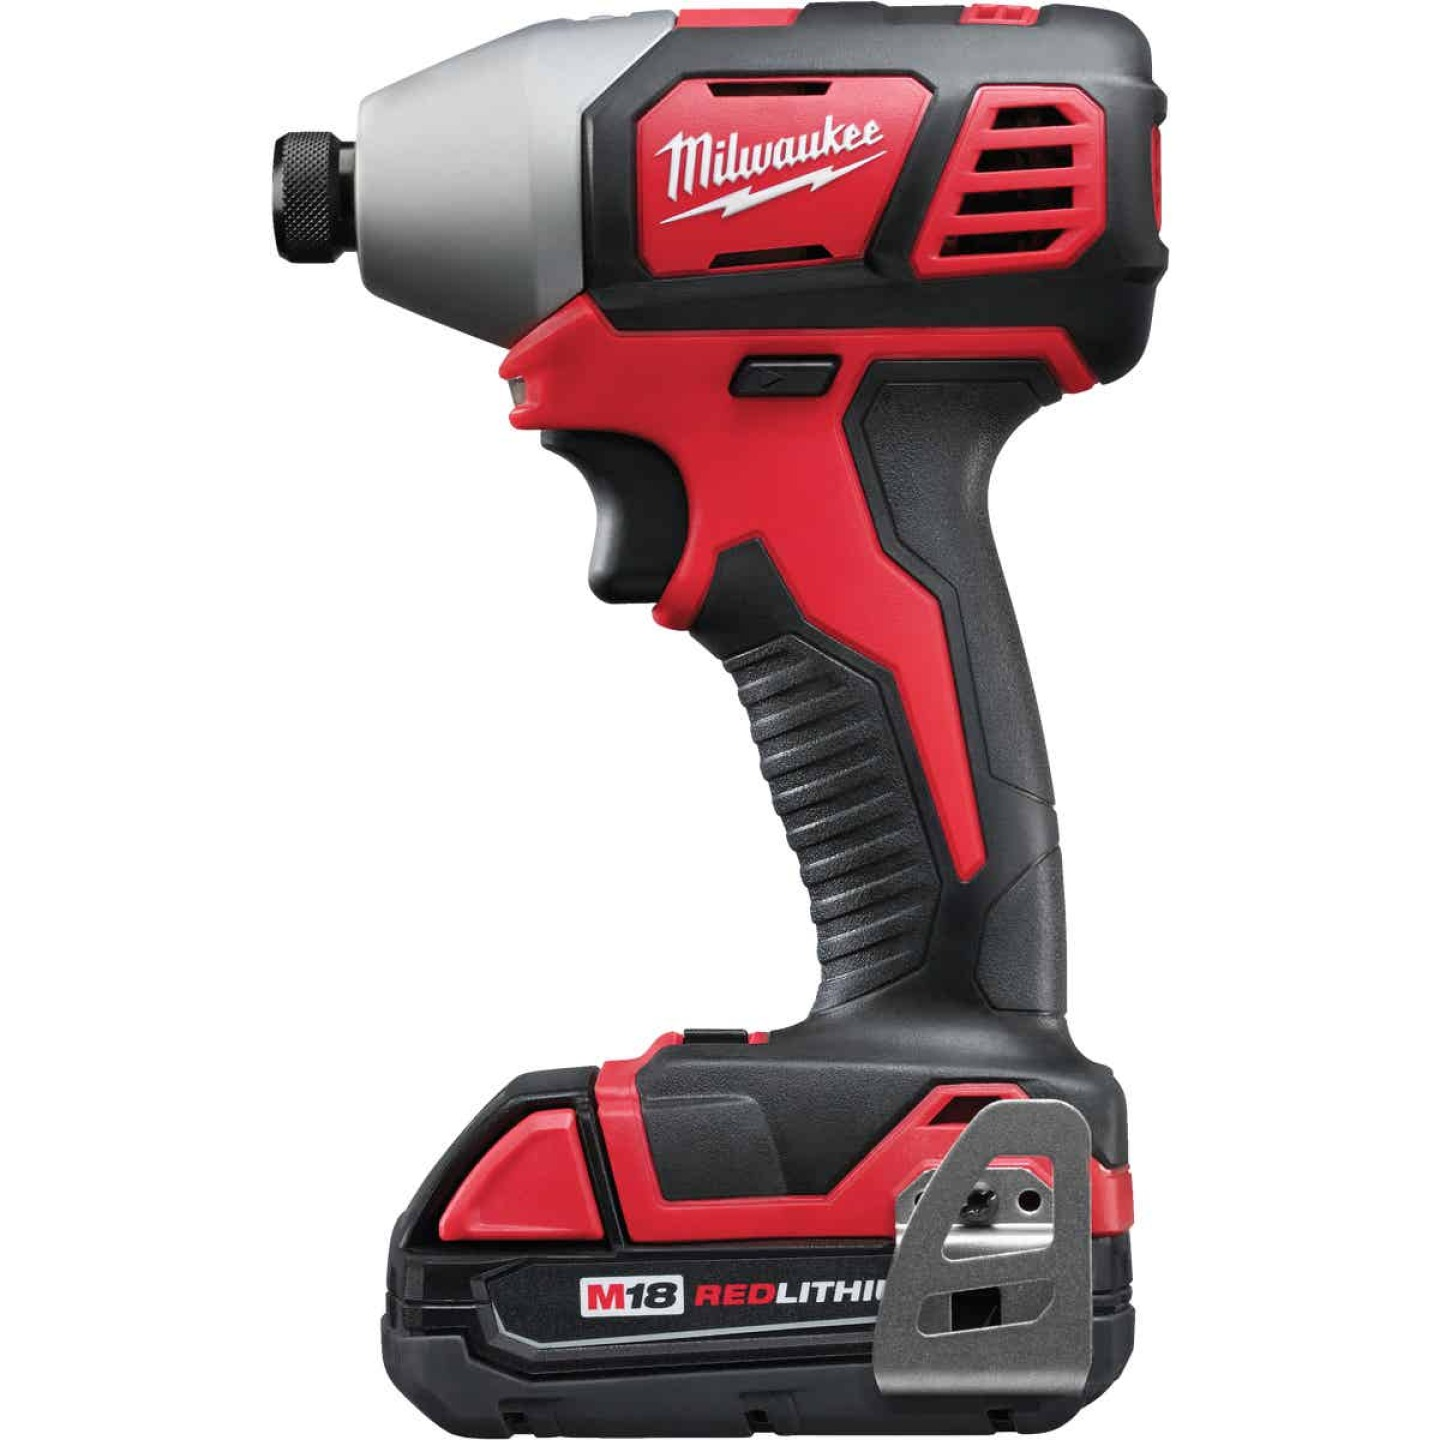 Milwaukee M18 18 Volt Lithium-Ion 2-Speed 1/4 In. Hex Cordless Impact Driver Kit (with 2 Compact Batteries) Image 4